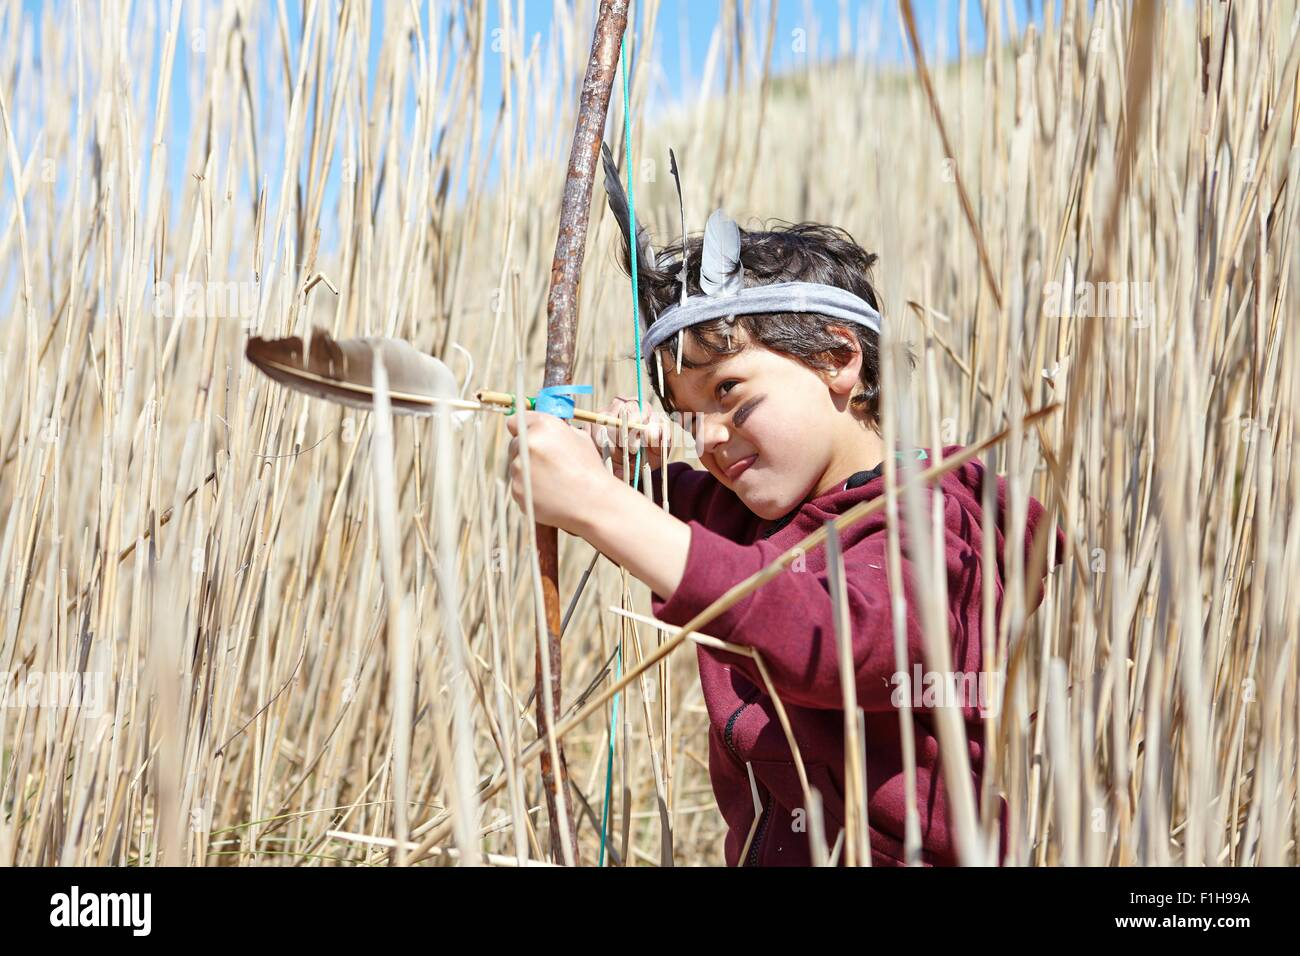 Young boy wearing fancy dress, holding home-made bow and arrow - Stock Image